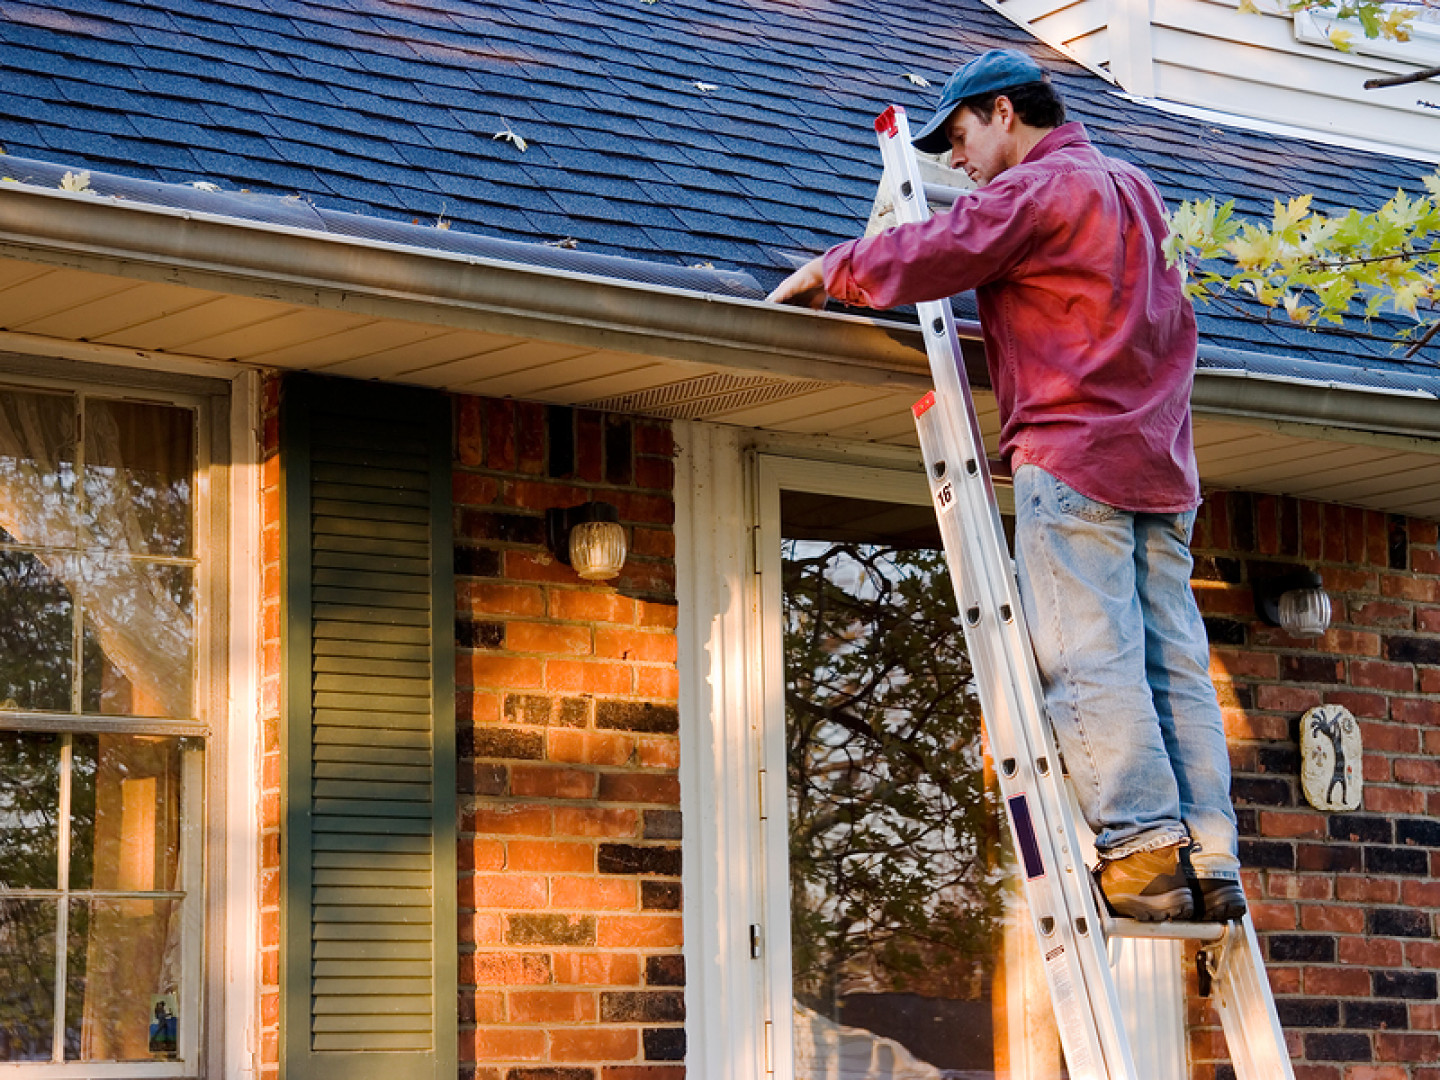 When's the Last Time You Cleaned Your Gutters?